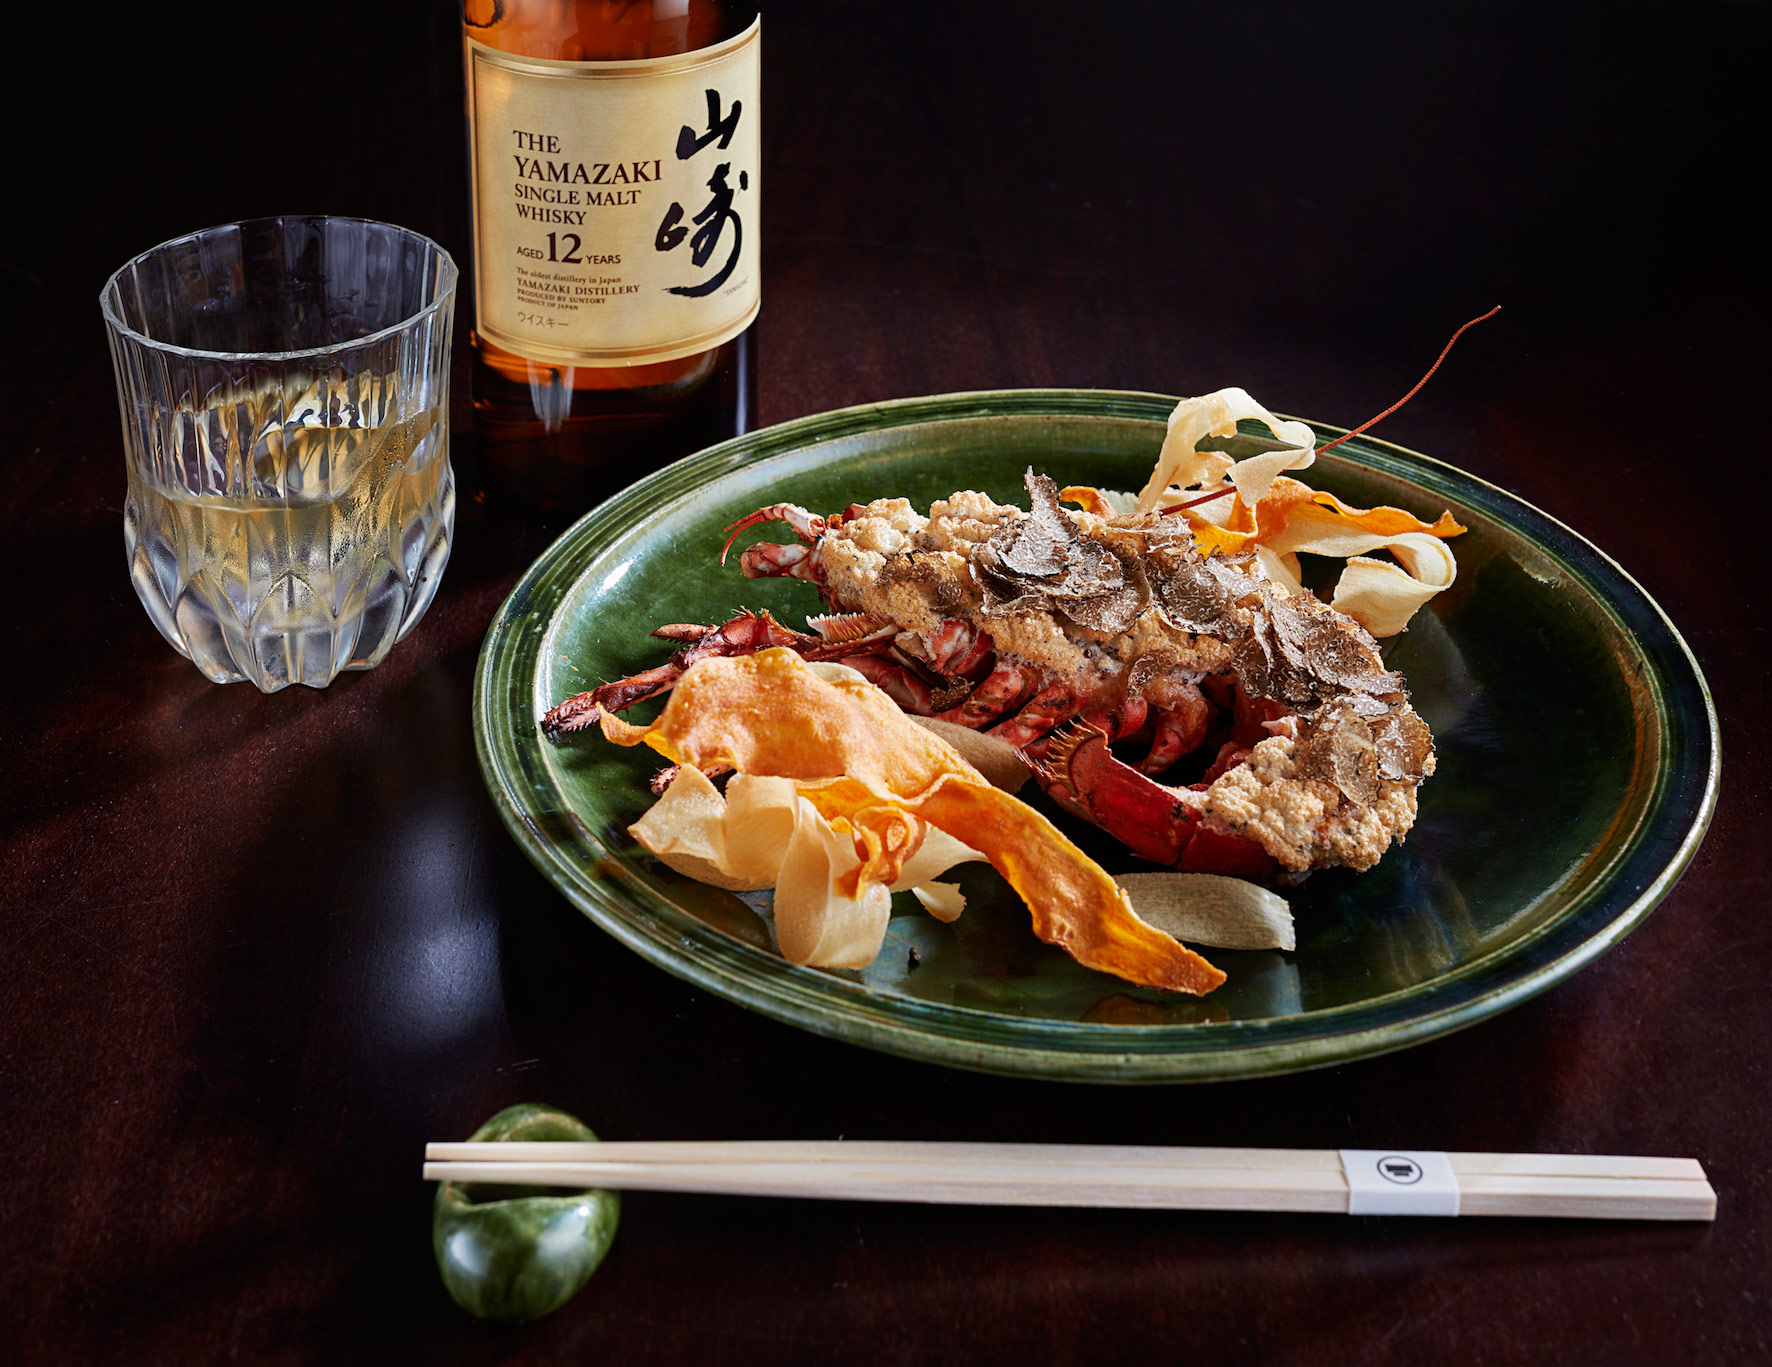 Tokimeite & Sunitory Whisky Come Together For Culinary Showcase In London